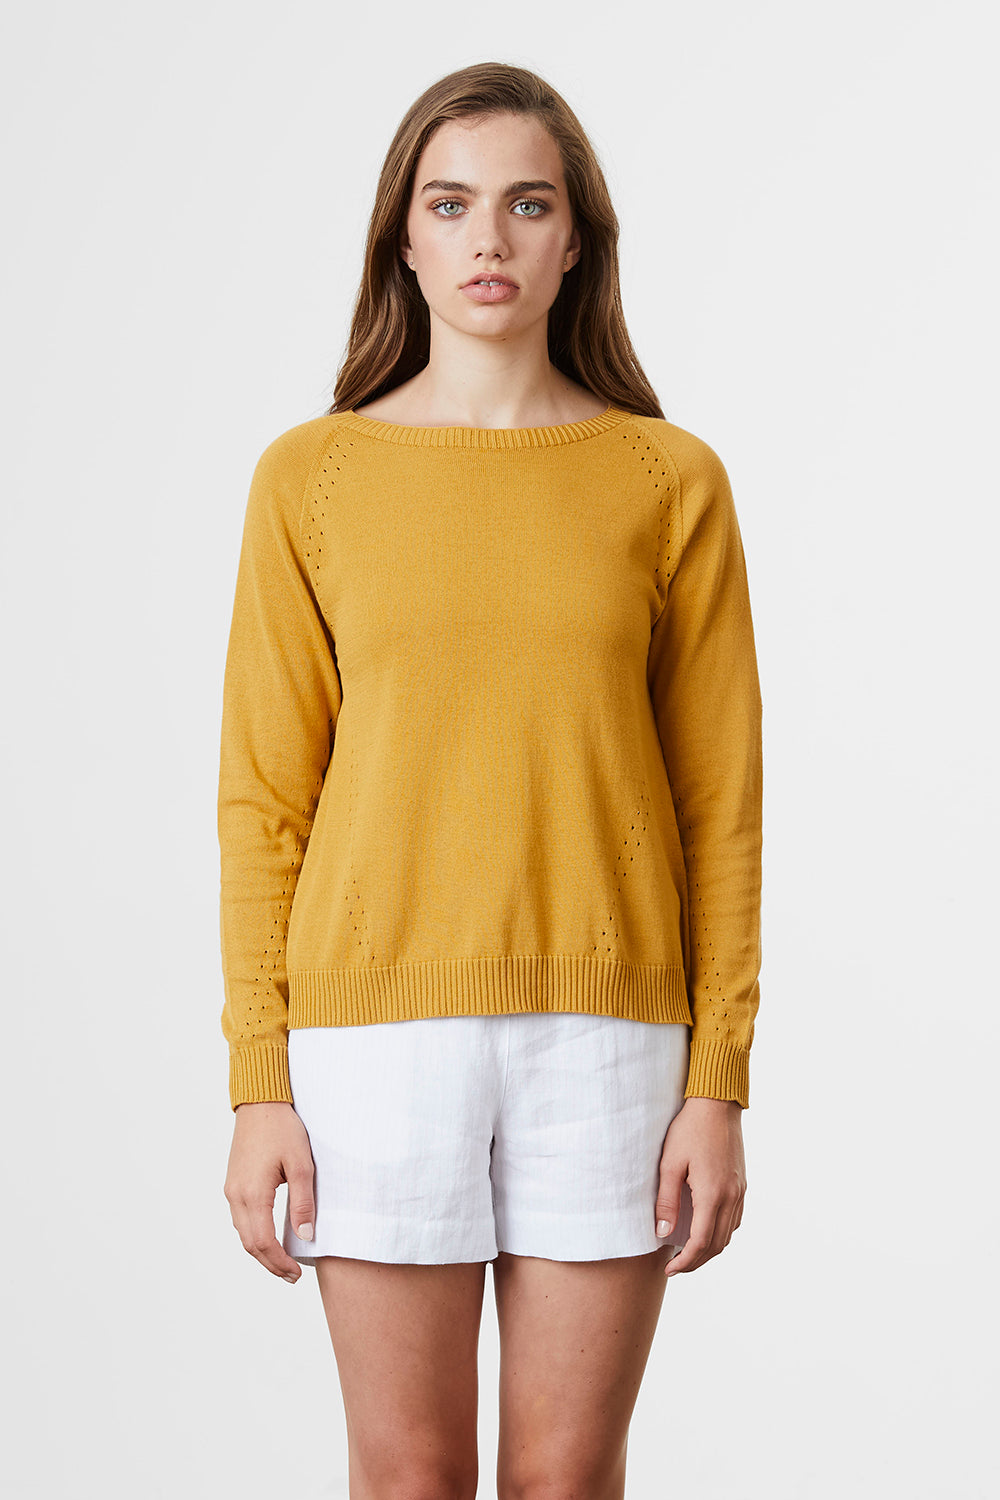 Eyelet Jumper - Standard Issue